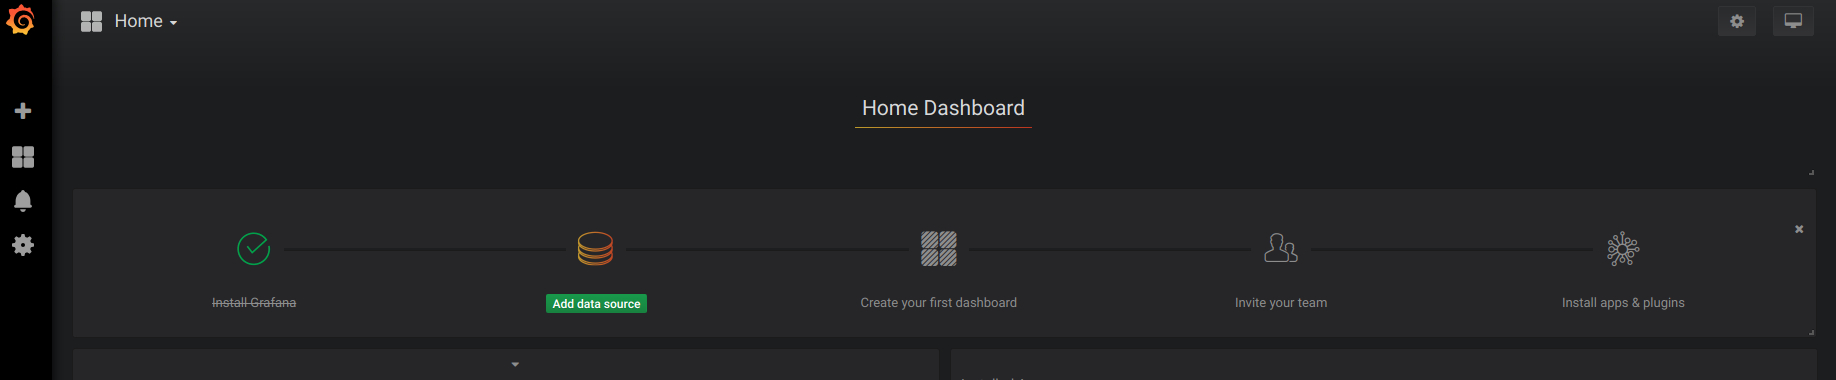 grafana-home.jpg